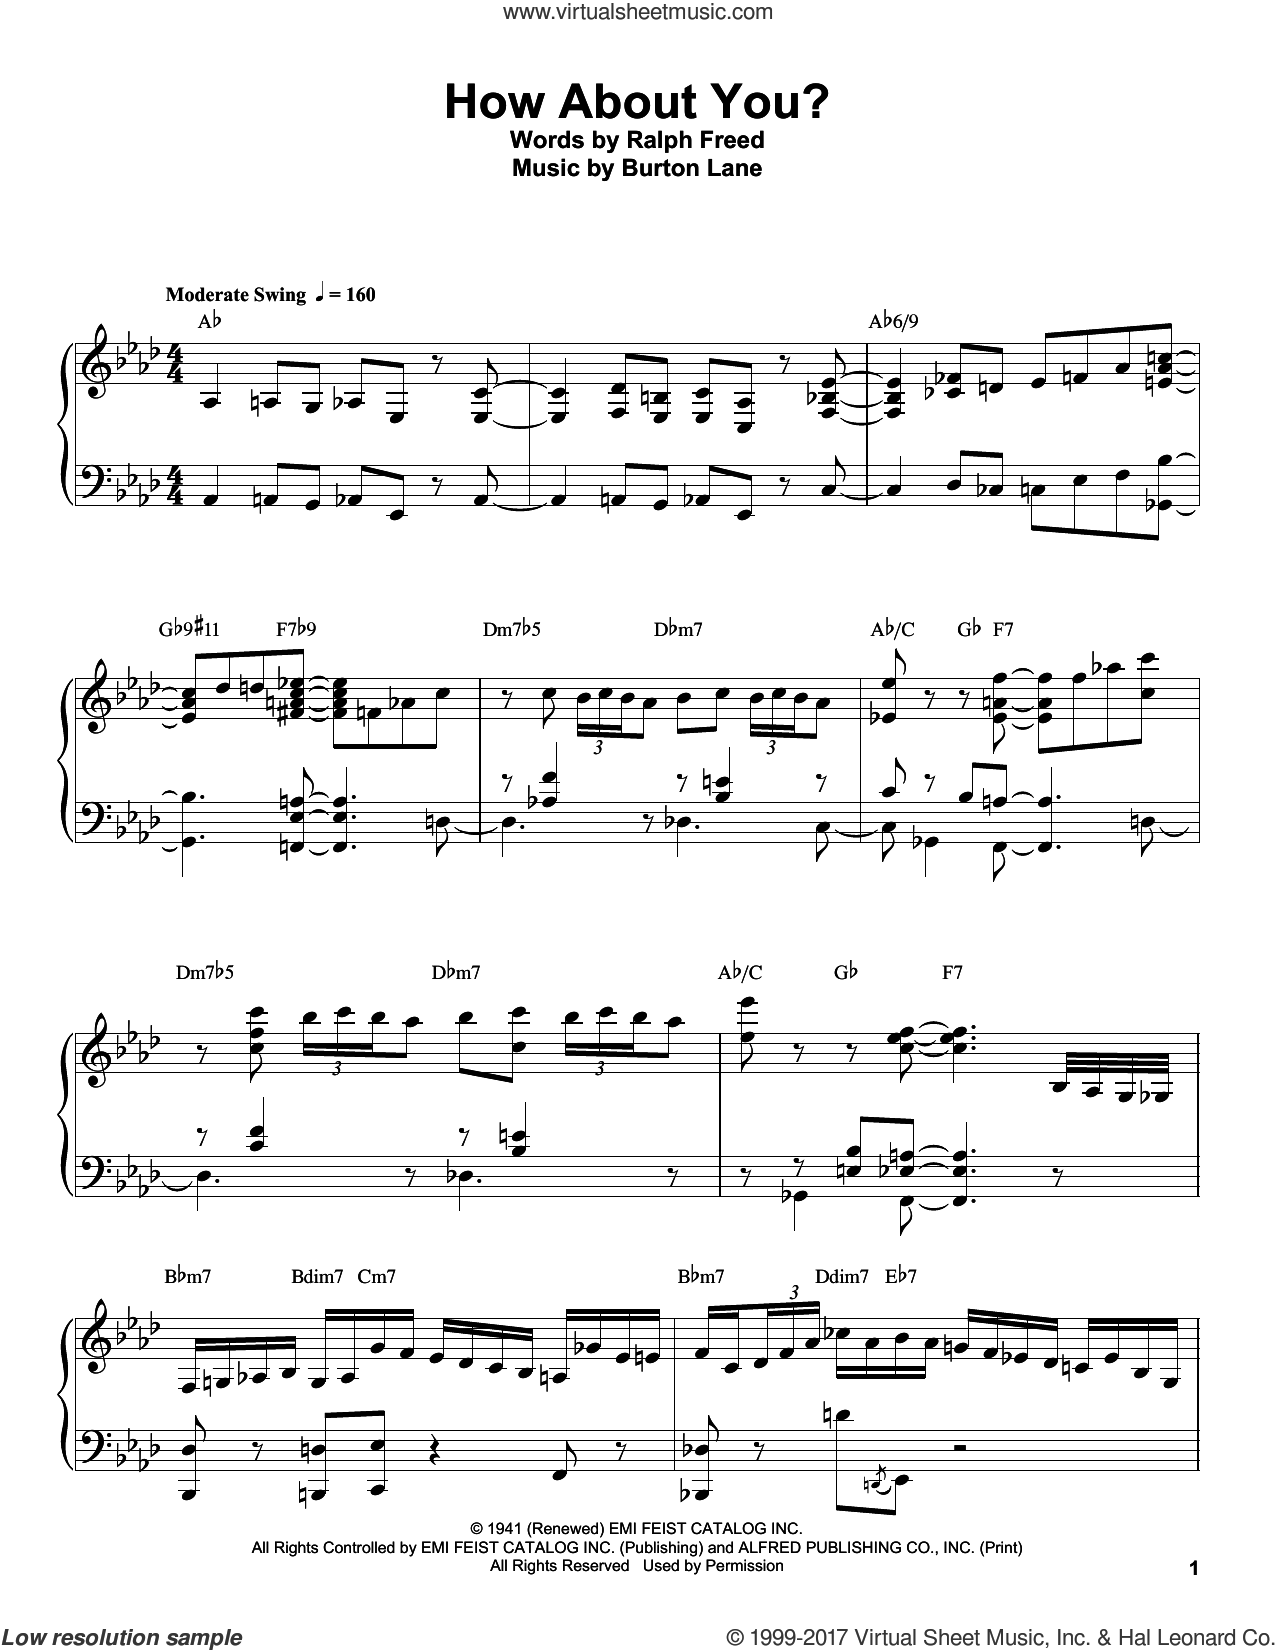 How About You? sheet music for piano solo (transcription) by Oscar Peterson, Burton Lane and Ralph Freed, intermediate piano (transcription)